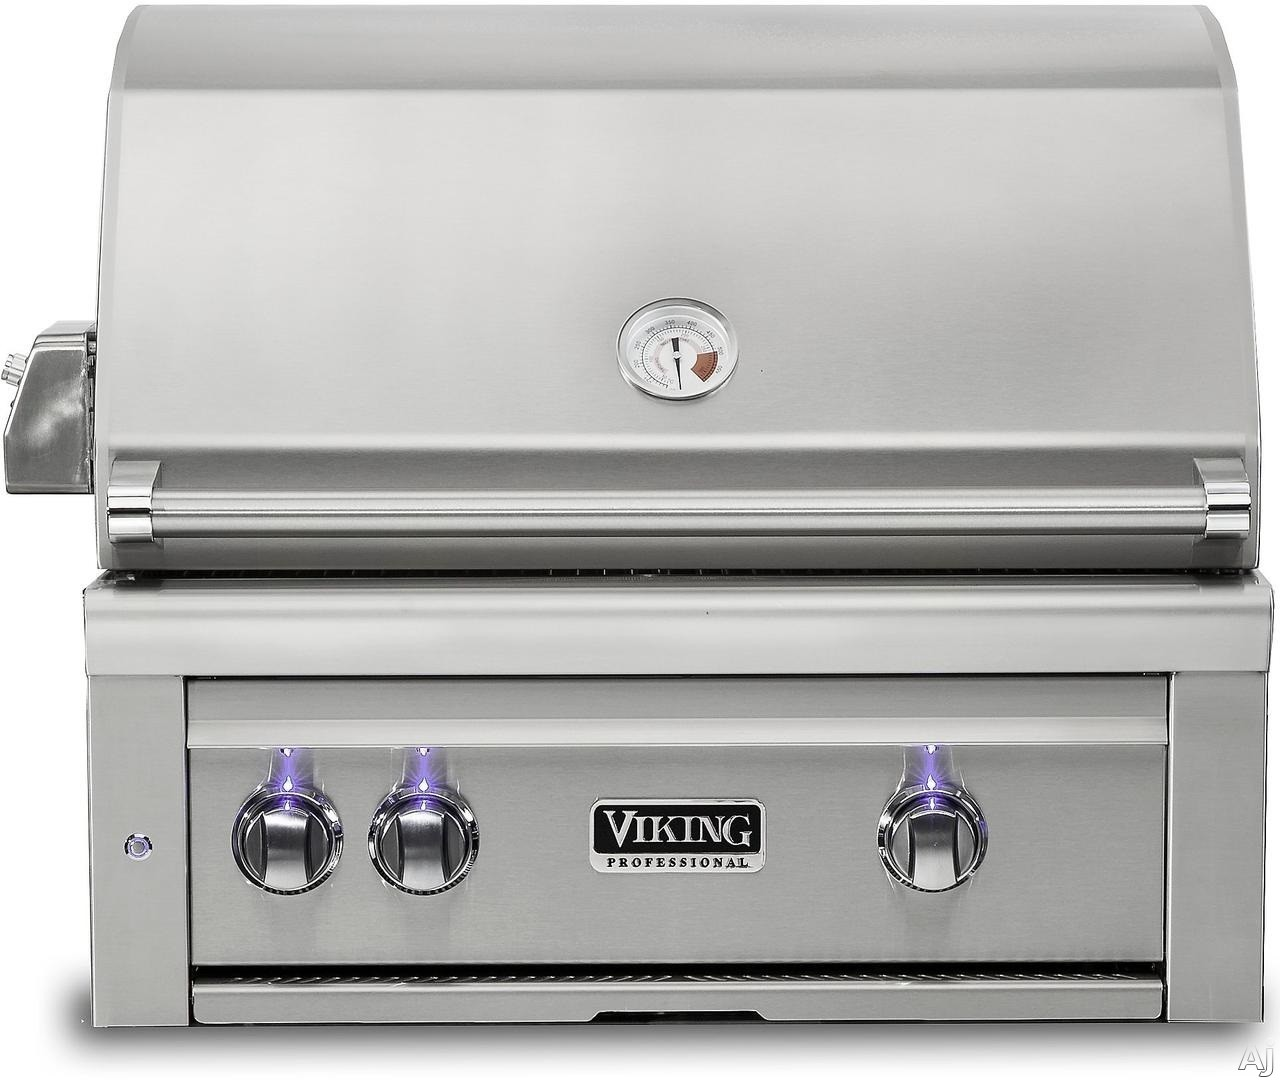 "Viking Professional 5 Series VQGI5300LSS 30 Inch Built-In Grill with ProSear 2â""¢ Burner, Rotisserie, Blue LED Knobs, Halogen Grill Lights, Smoker Box, Temperature Gauge, Ceramic Briquettes and 84"